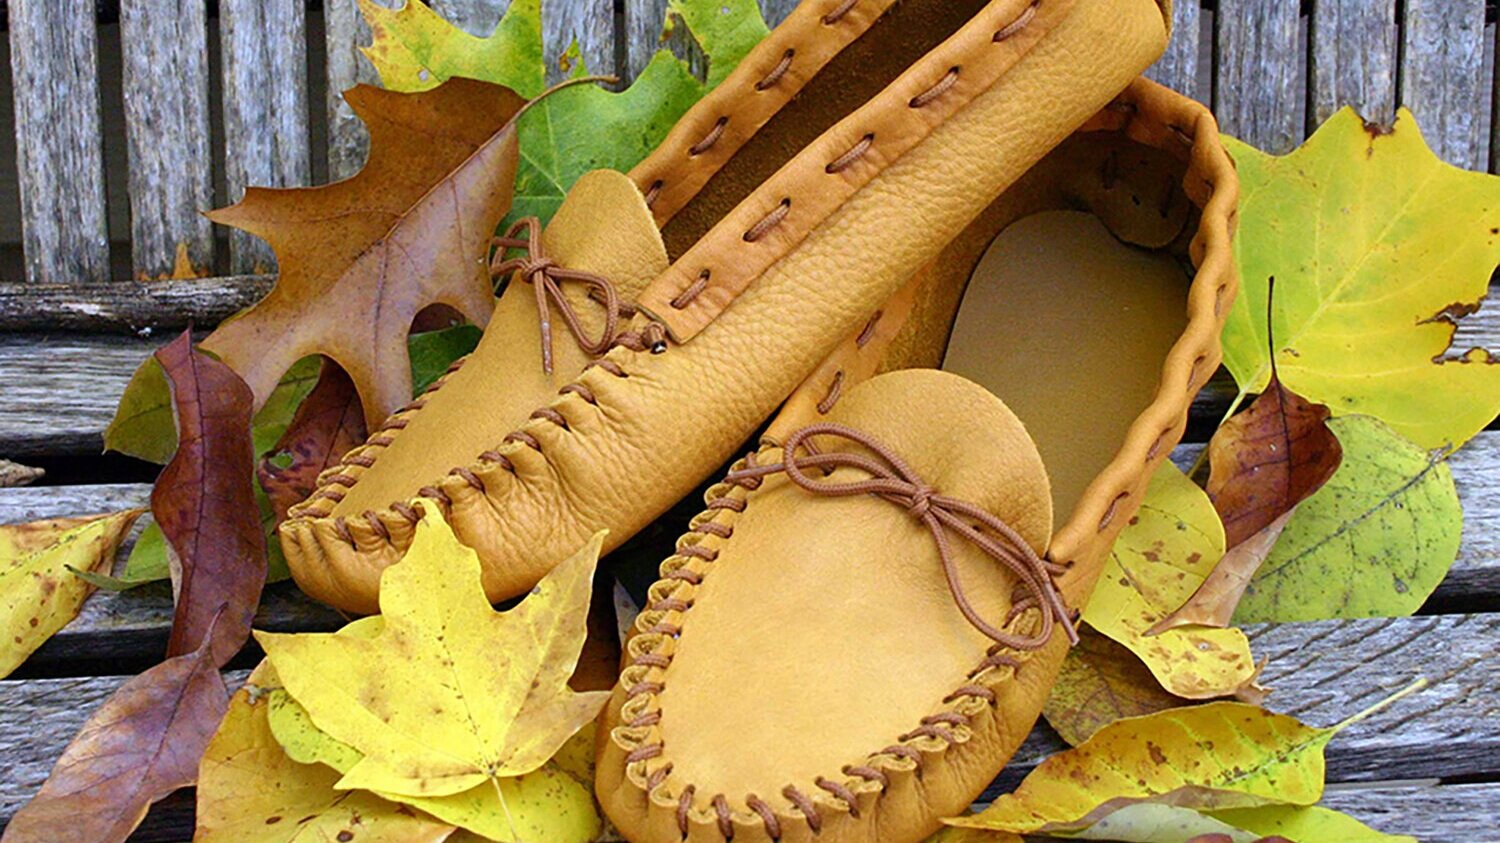 Realeather Leather Moccasins.jpg